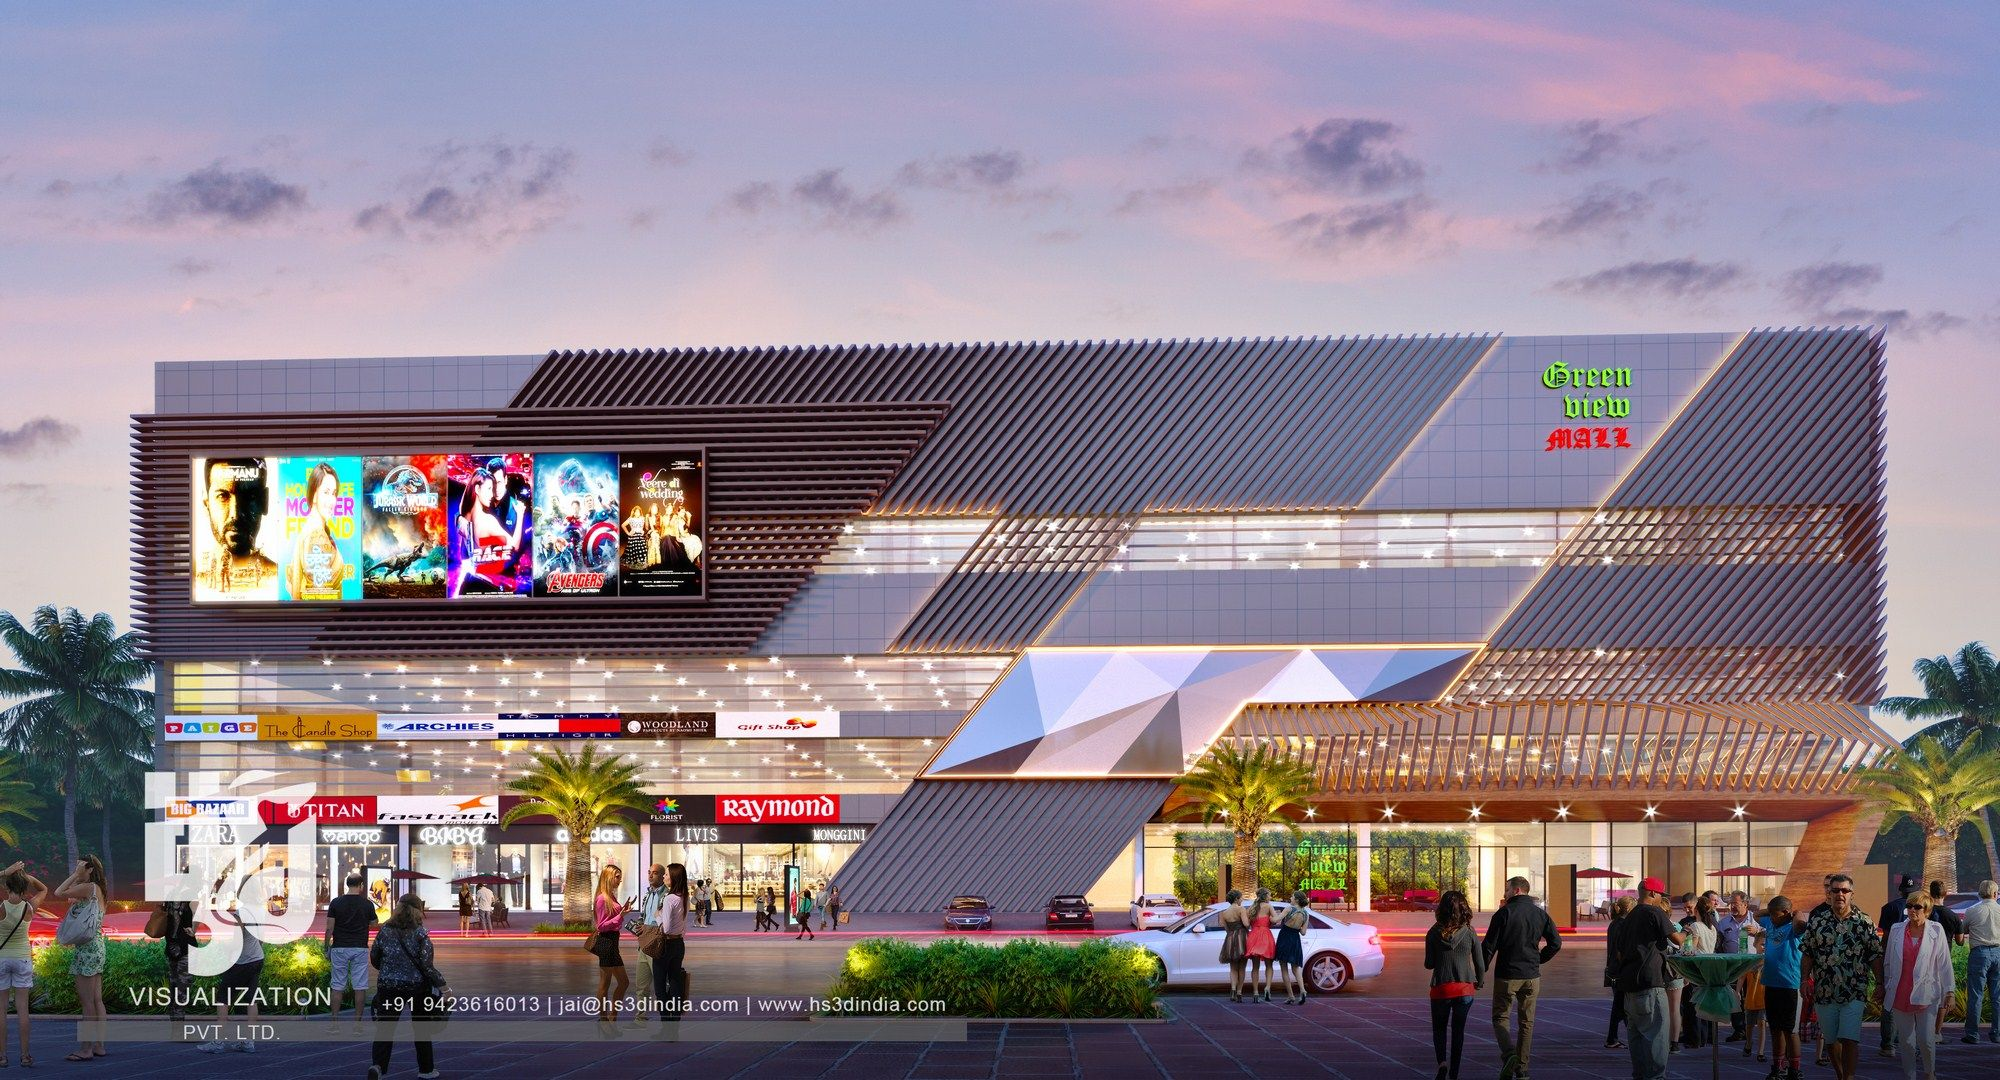 Top Commercial Mall Designs Animation Visualizations Shopping Mall Architecture Mall Design Mall Facade